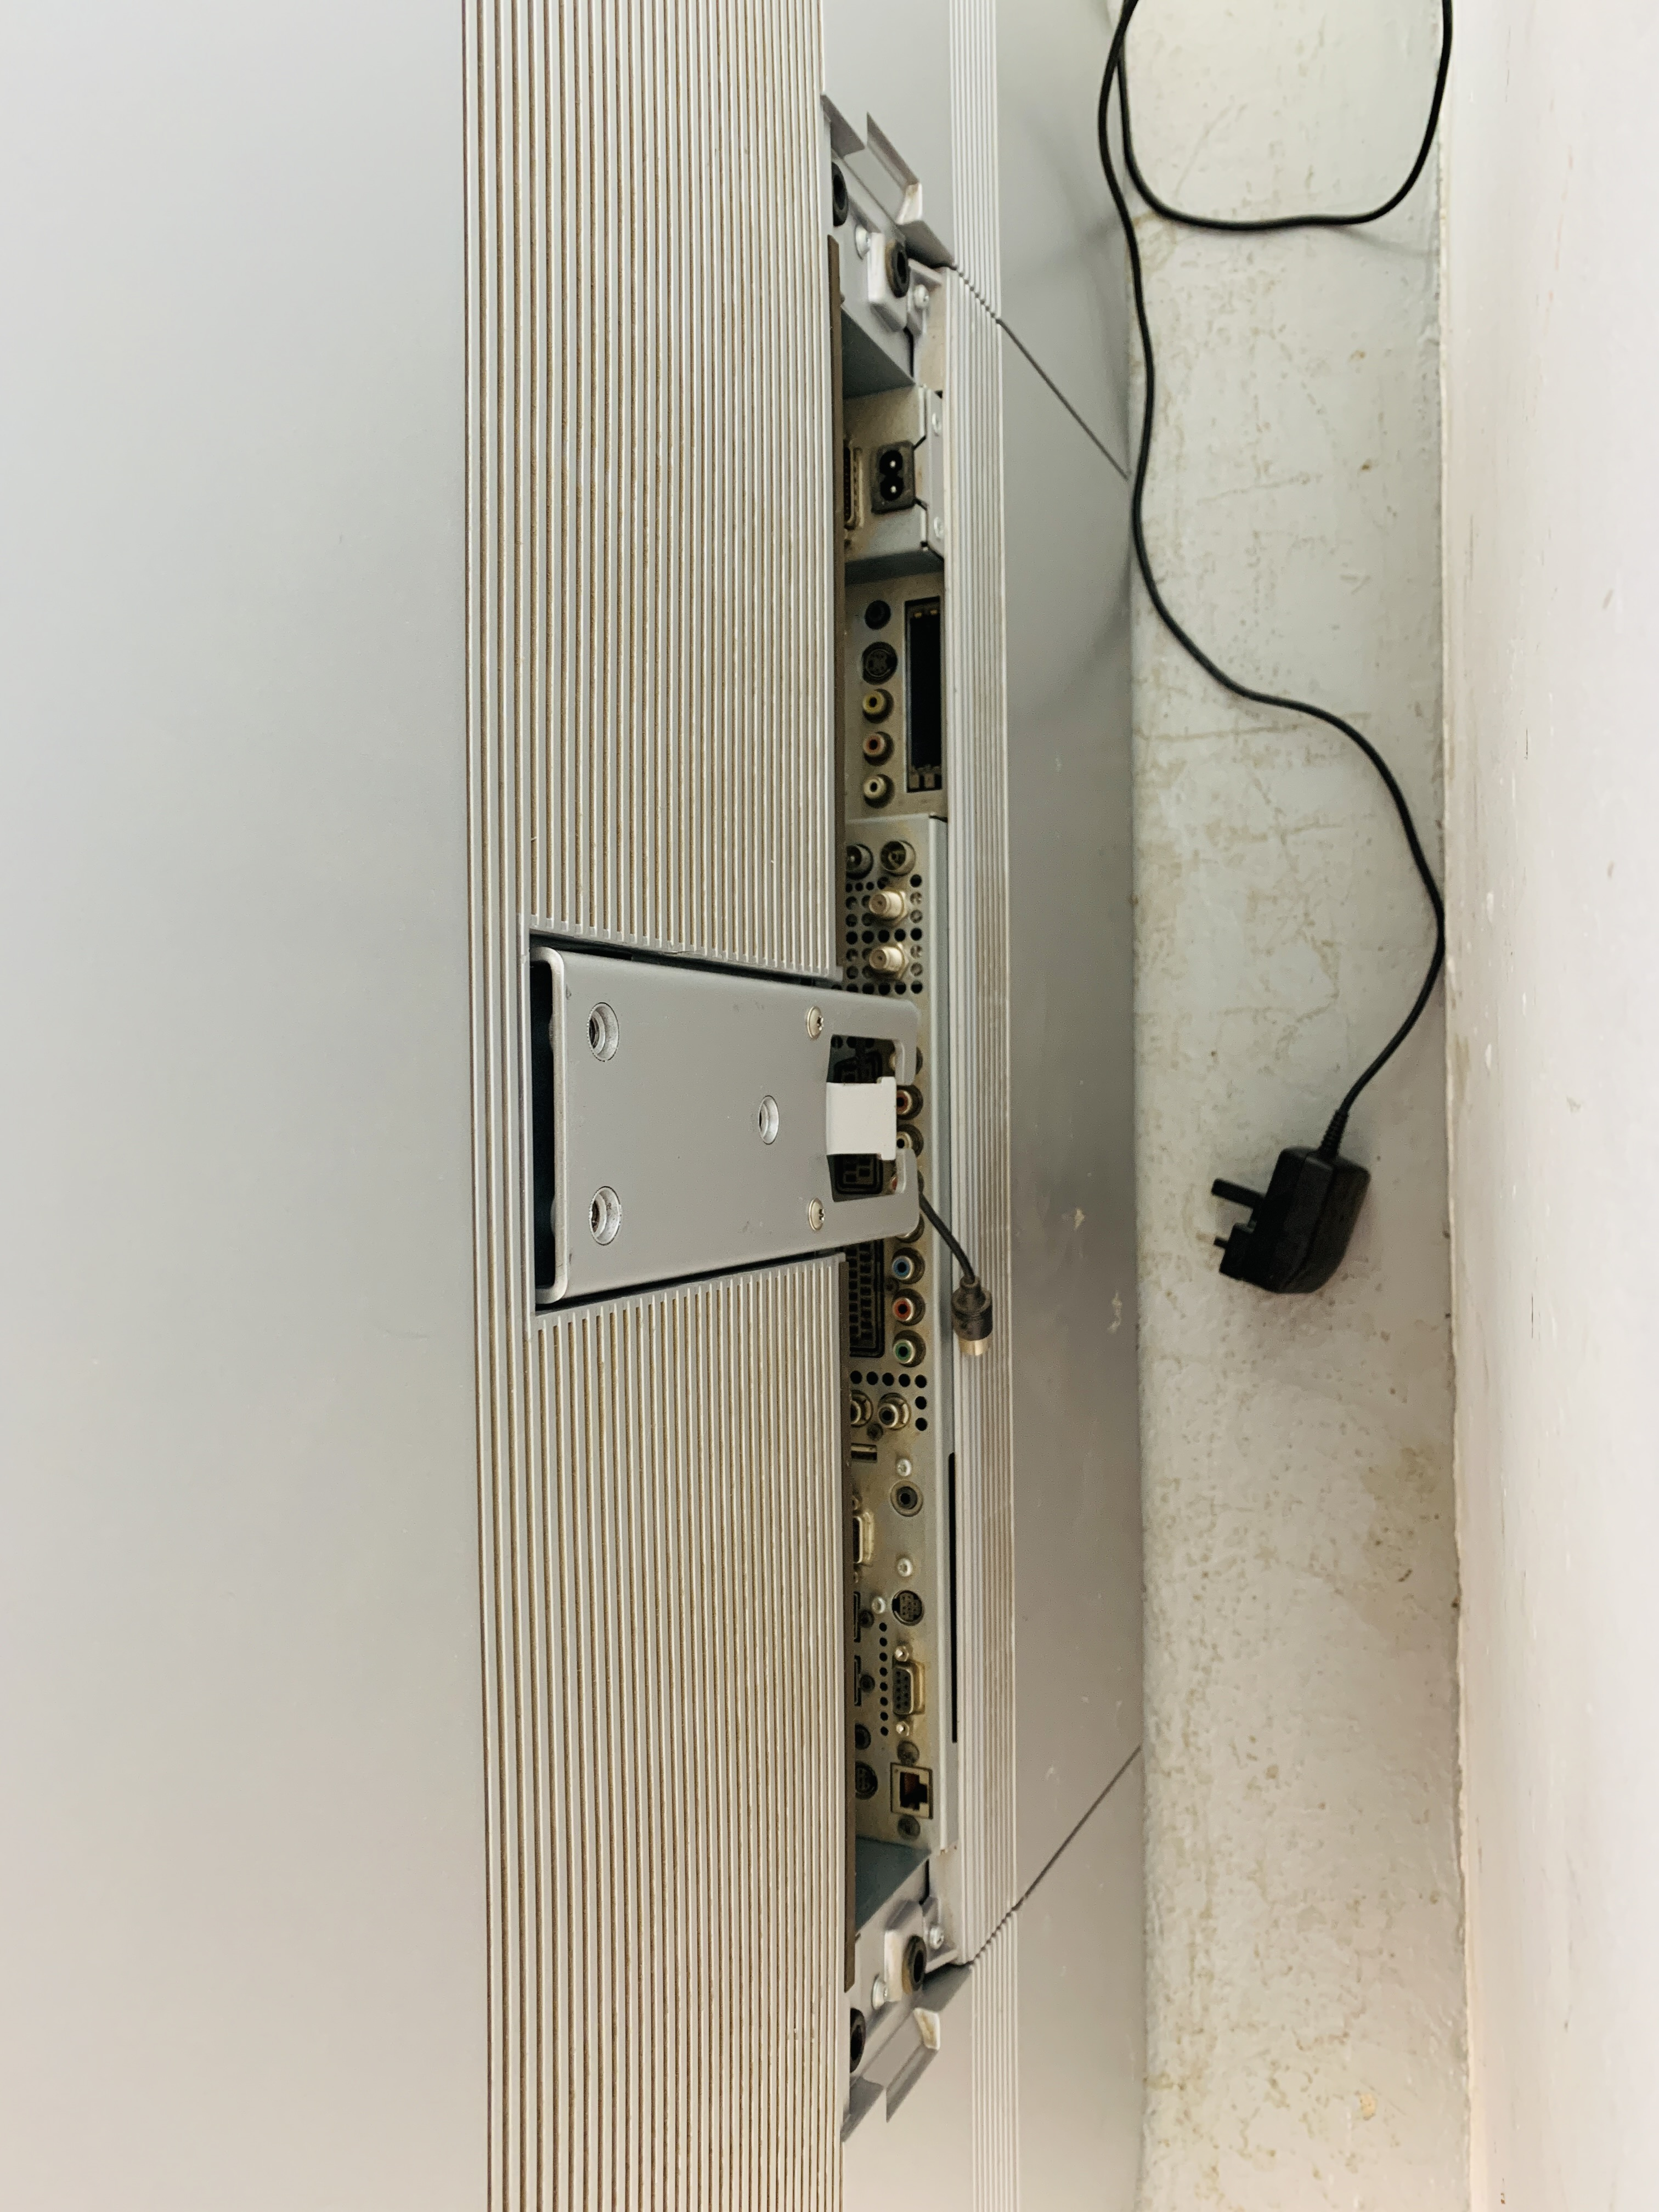 A LOEWE REFERENCE 52 TELEVISION WITH ORIGINAL REMOTE - SOLD AS SEEN - Image 10 of 14